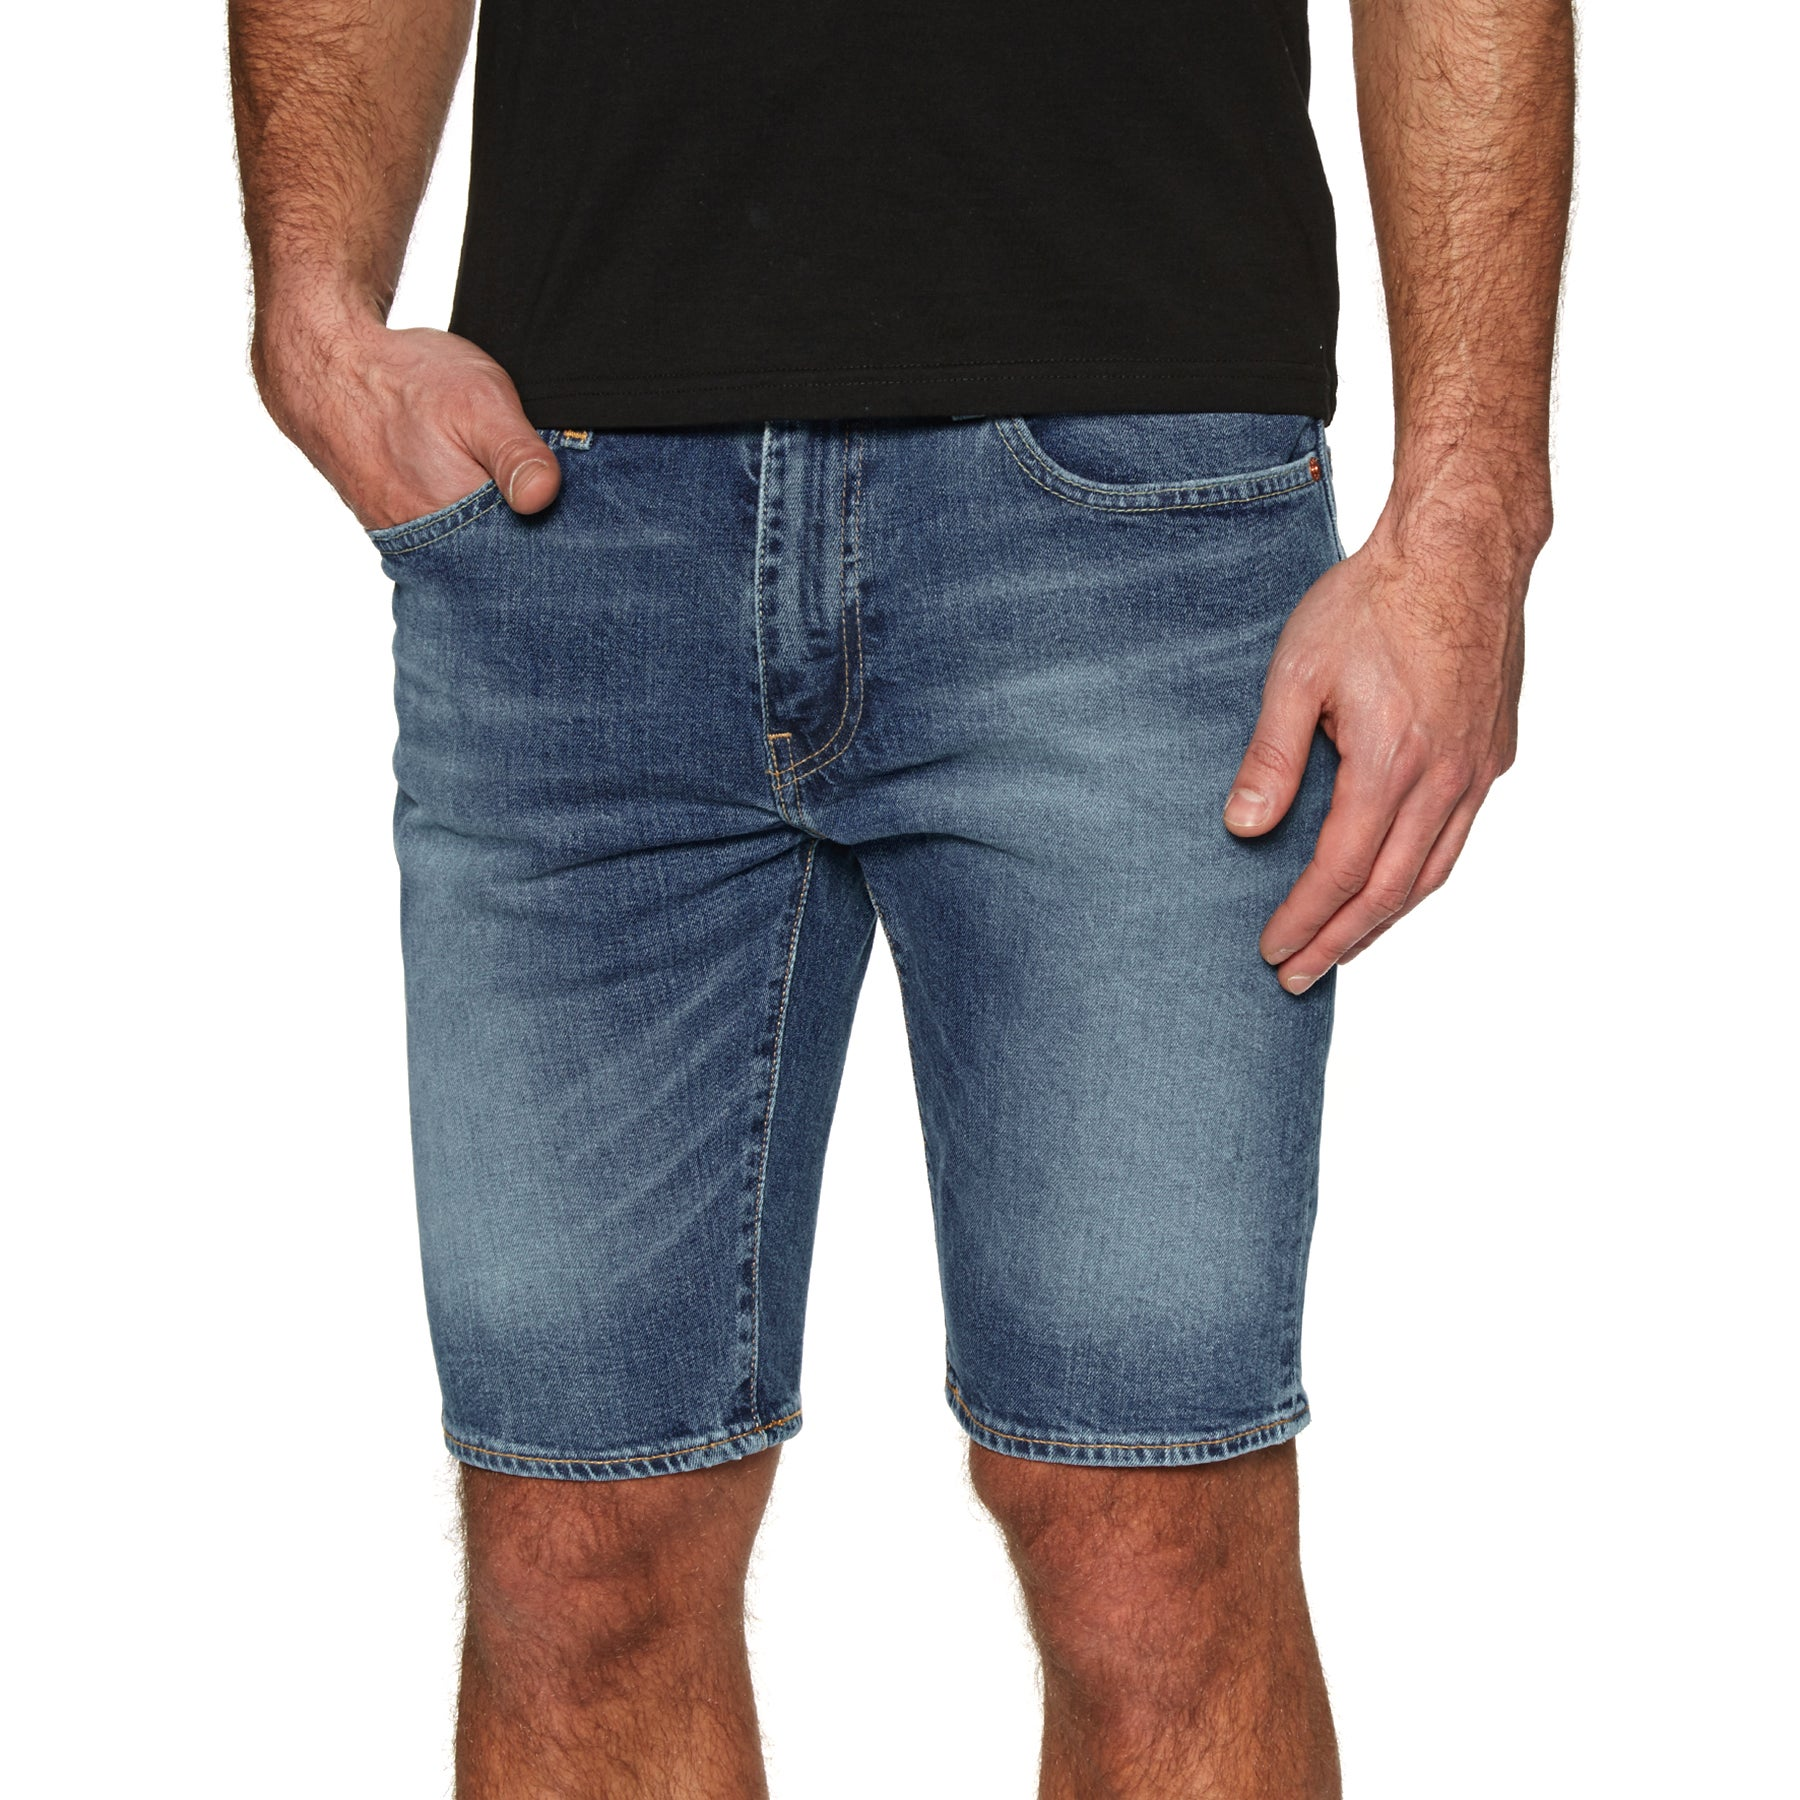 Levis 502 Taper Hemmed Walk Shorts - Harbour